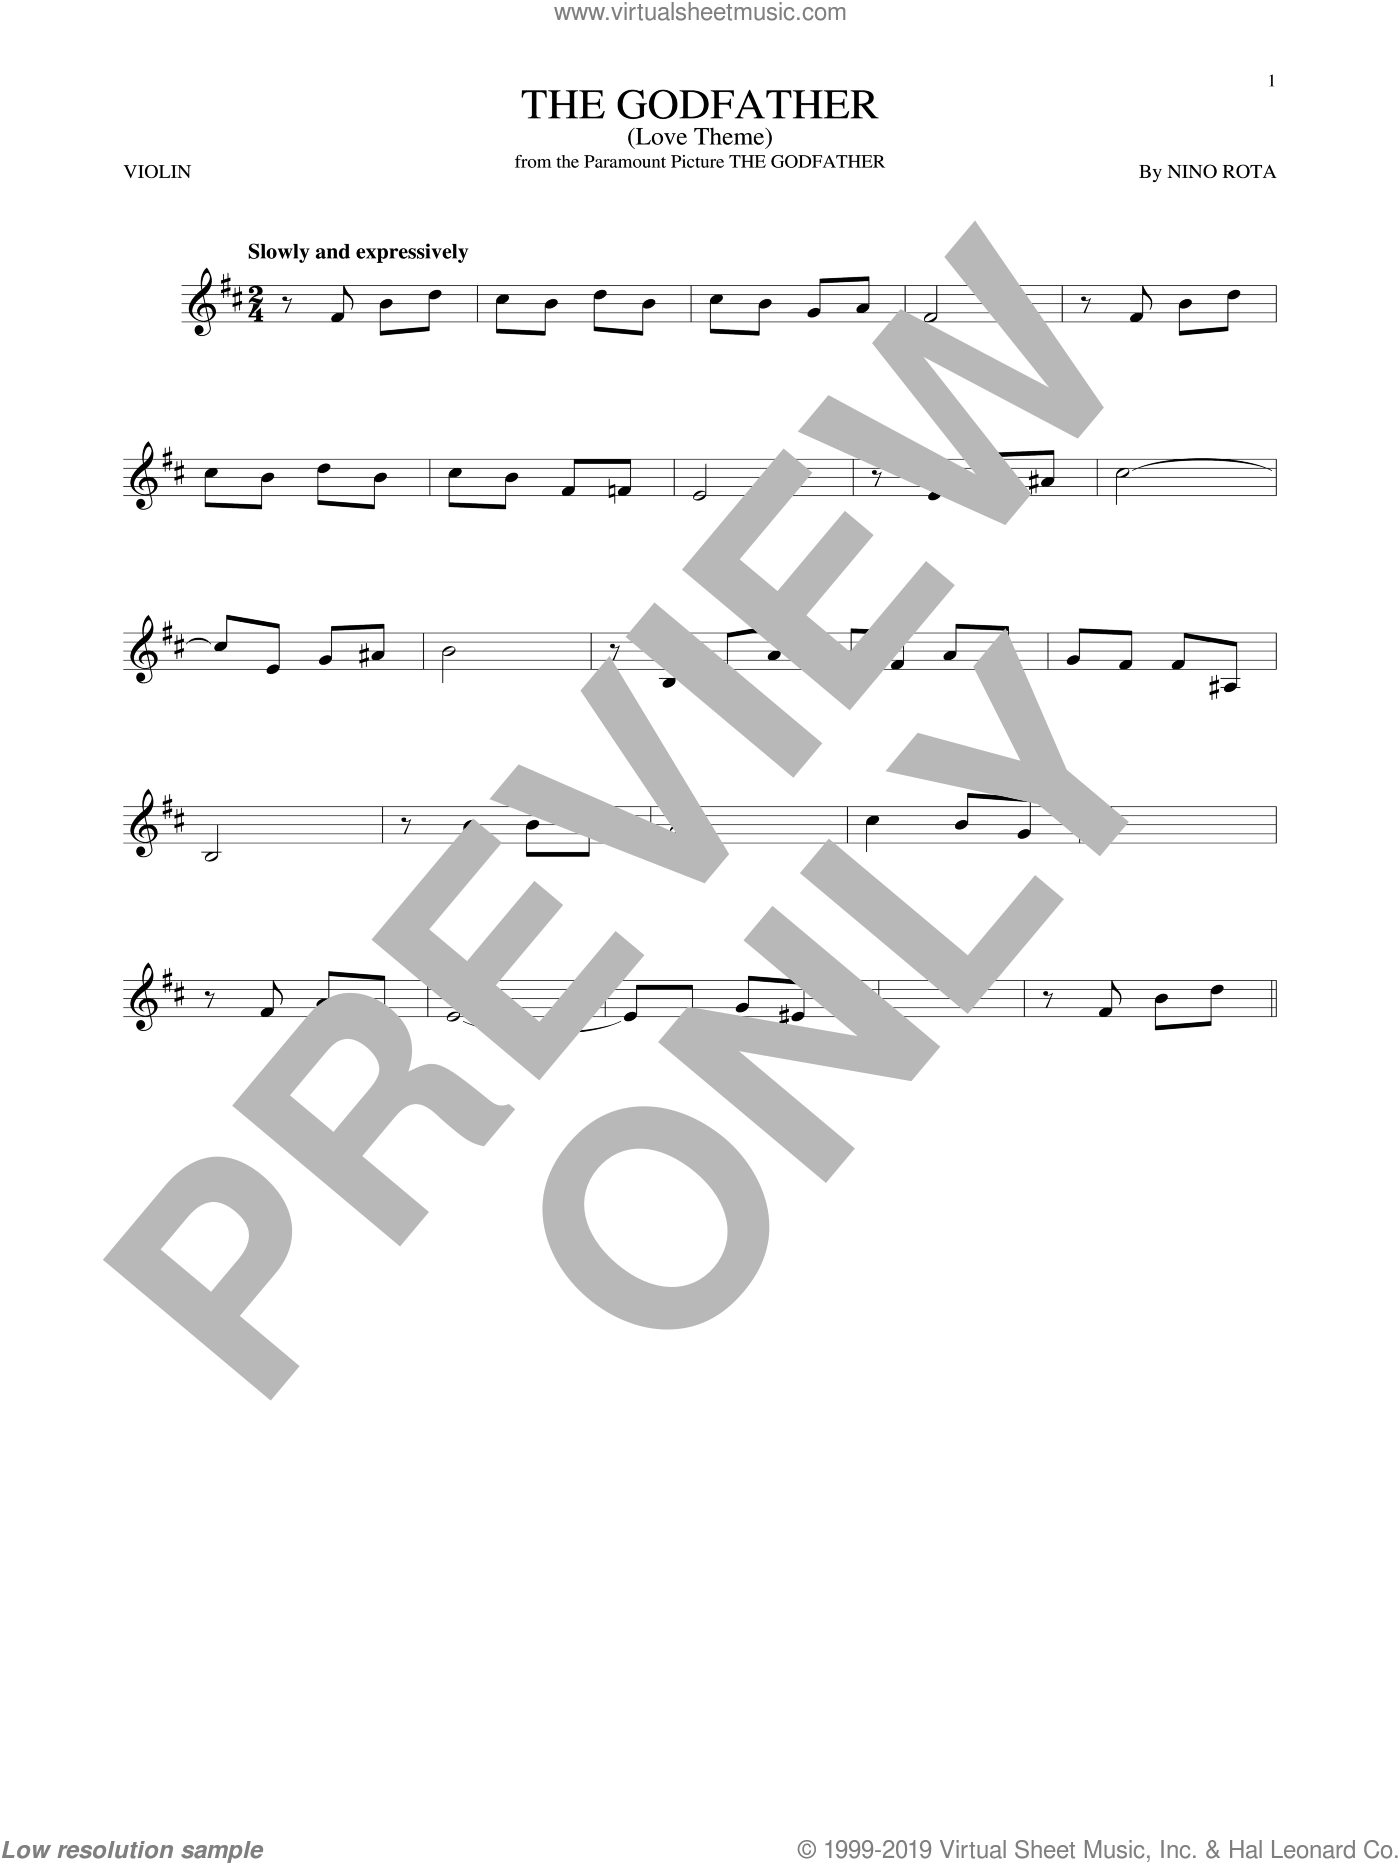 The Godfather (Love Theme) sheet music for violin solo by Nino Rota, intermediate skill level